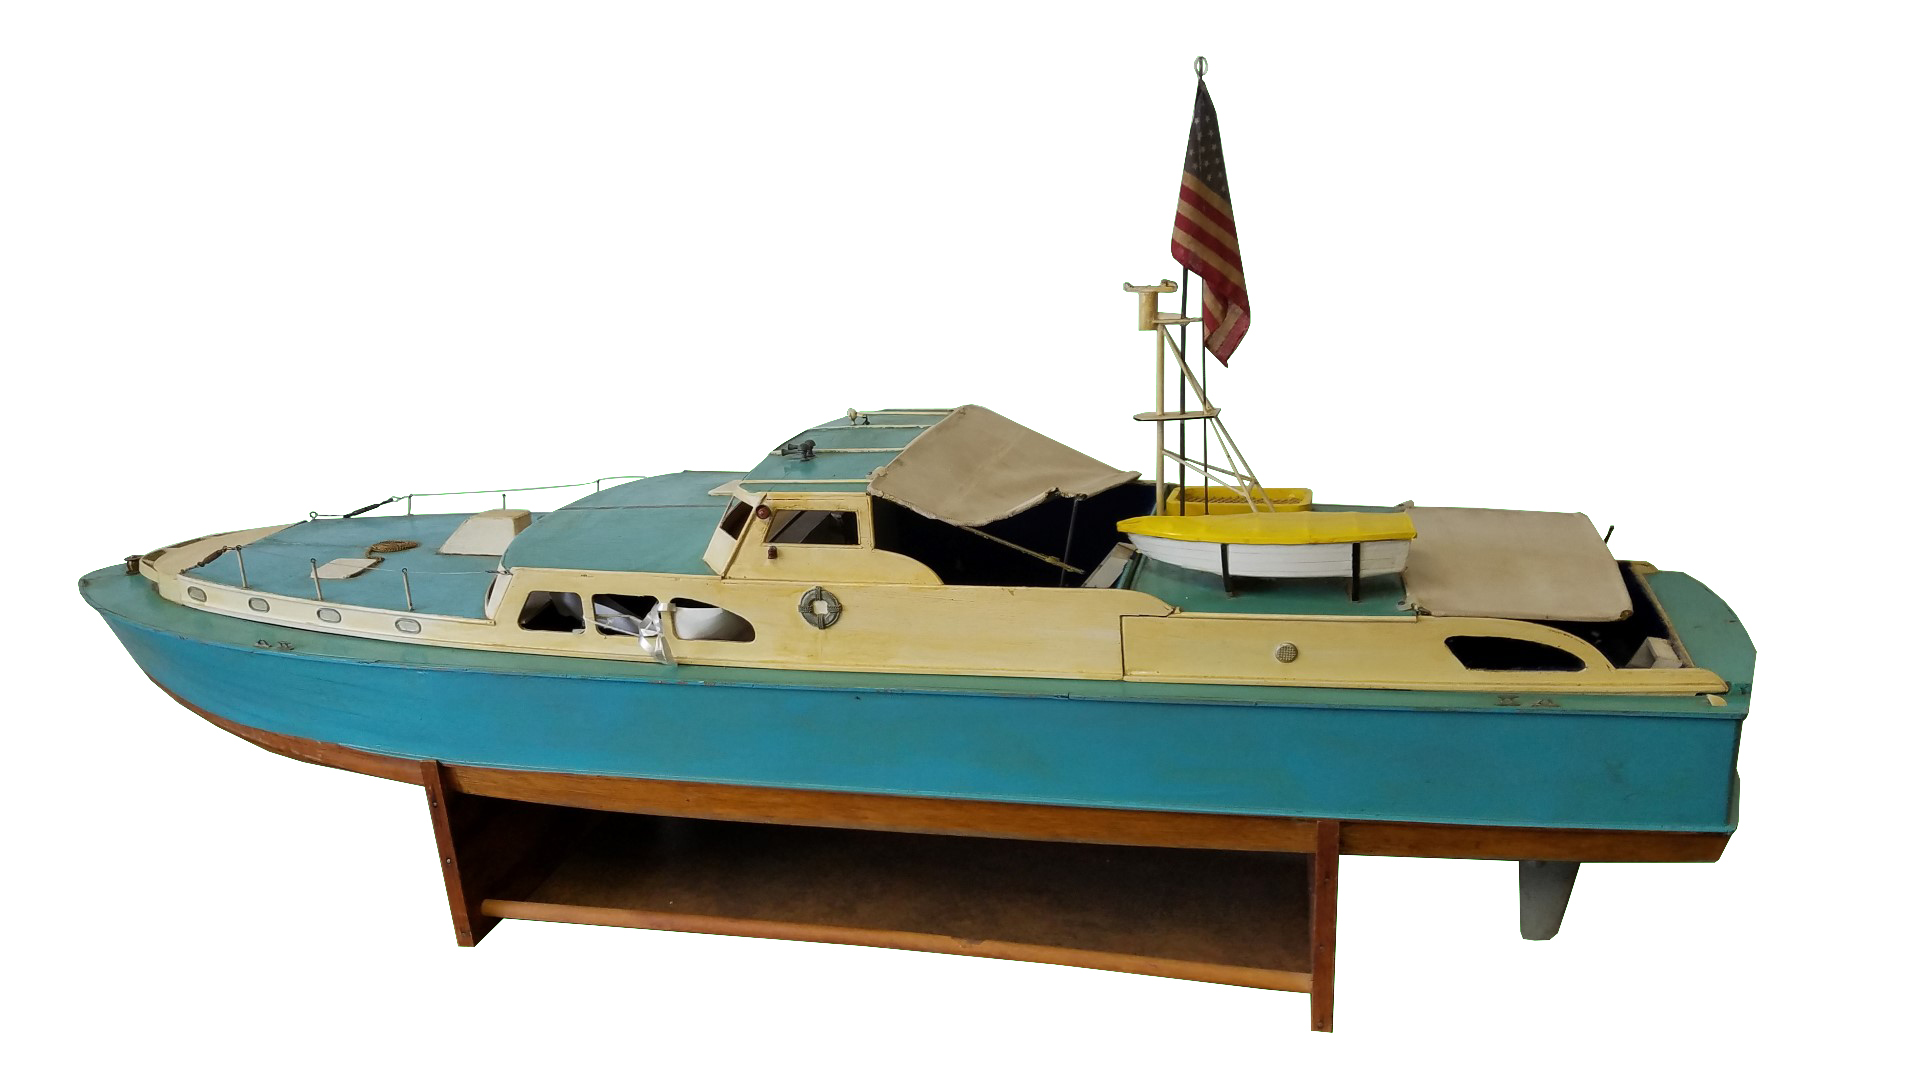 Ccrs16 Wooden Model Boat Marked Rockefeller Collection